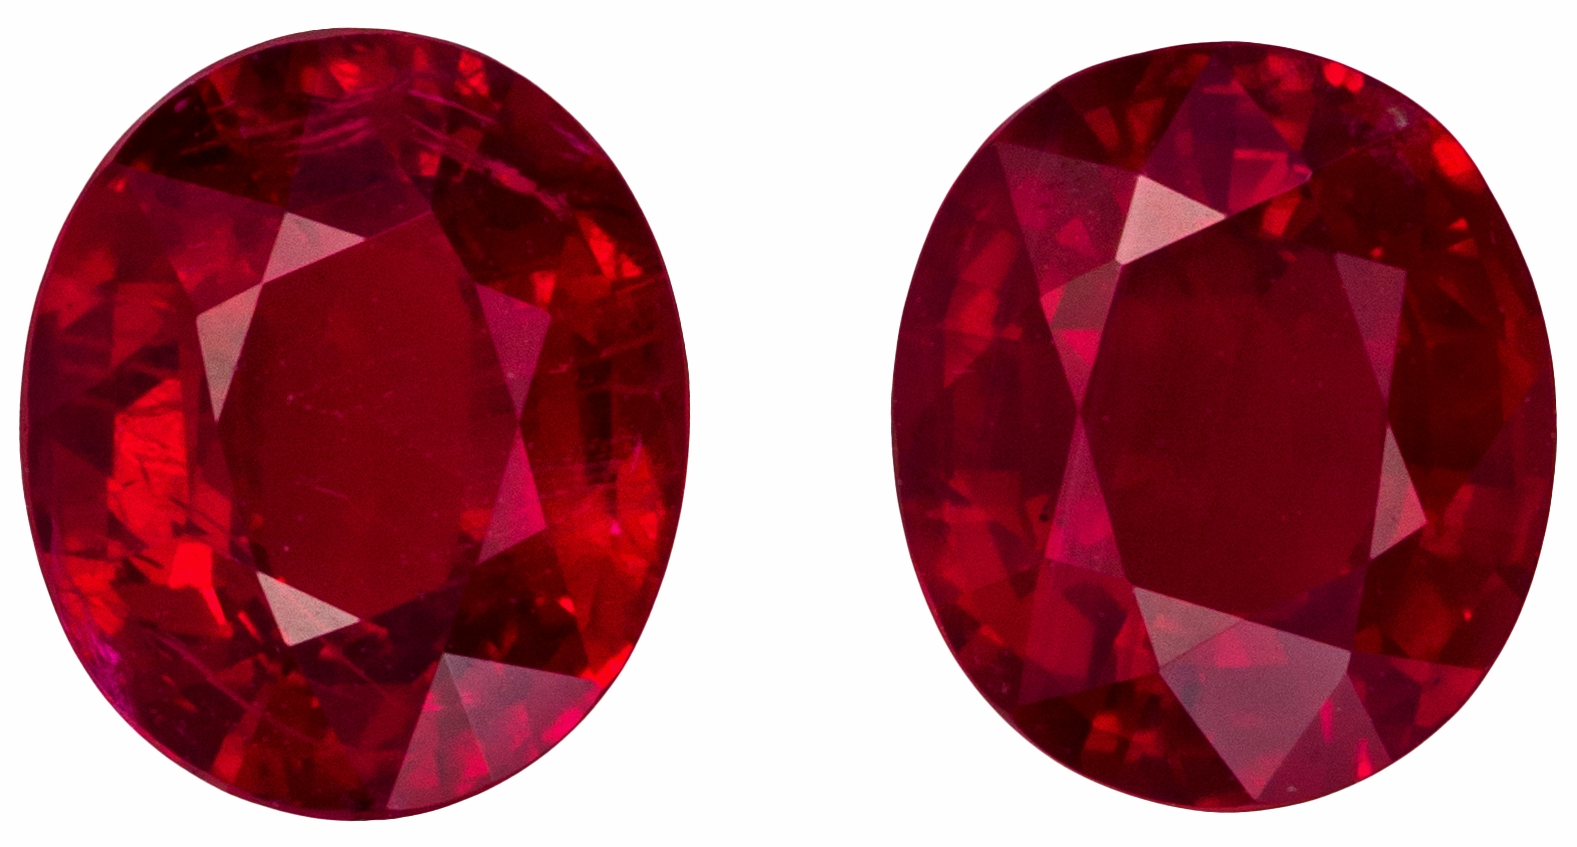 Pair of 3.11 carat Rubies in Oval shape gemstones, 7.6 x 5.5 mm in Vivid Pure Red